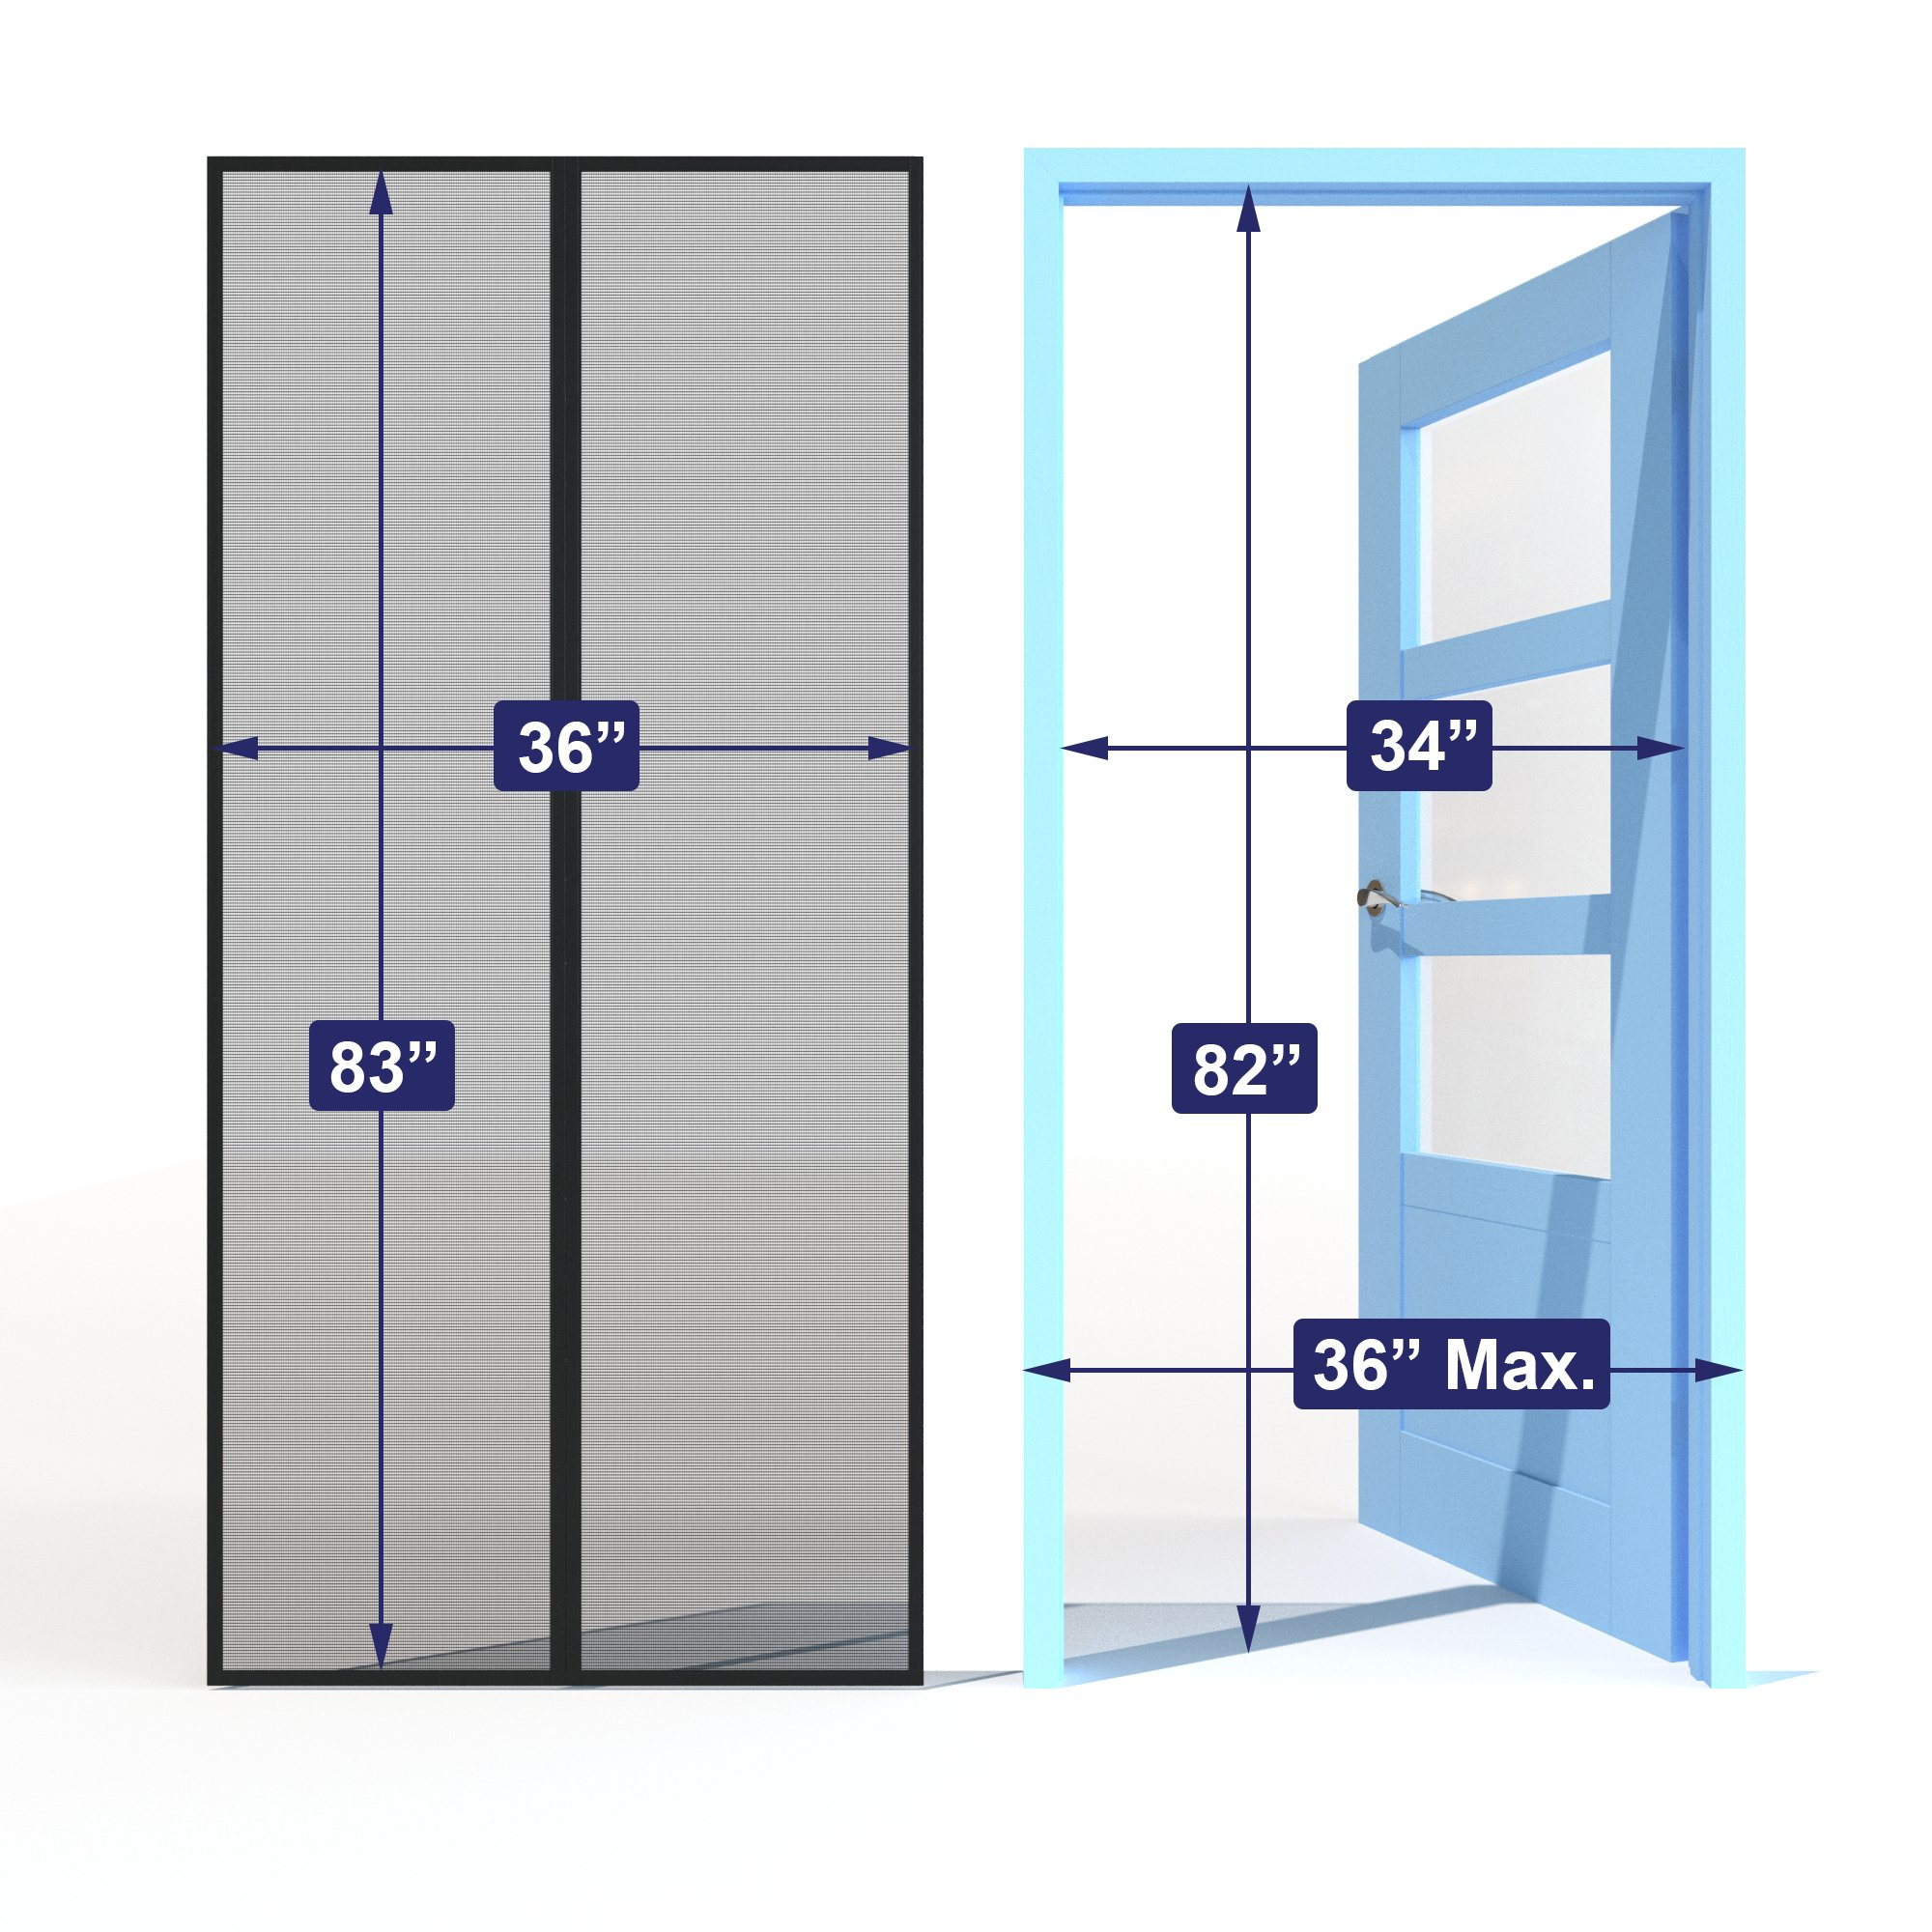 Home Diamonds Ultra Heavy Duty Fiberglass Magnetic Mesh Screen Door Full Frame Velcro, 28 Strong Magnets, Fit Doors up to 34 x 81-inches by Home Diamonds (Image #2)